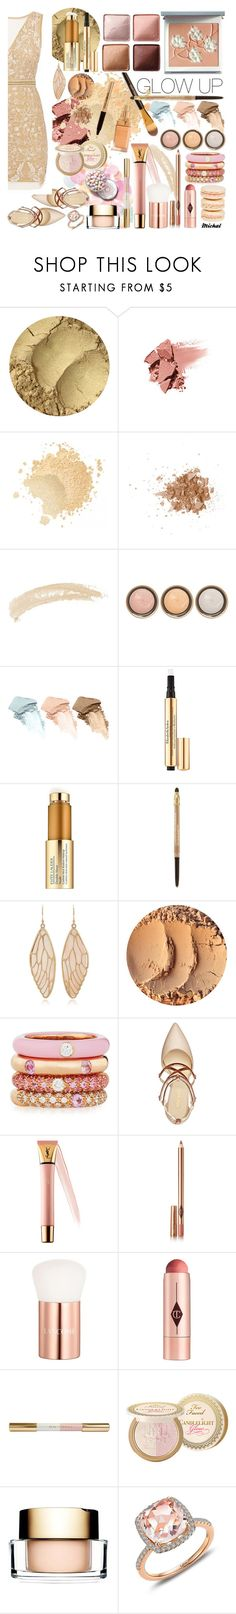 """Glam Highlighters"" by michal100-15-4 ❤ liked on Polyvore featuring beauty, Shiseido, Clarins, Dolce&Gabbana, Topshop, By Terry, Paul & Joe, Elizabeth Arden, Estée Lauder and Lancôme"